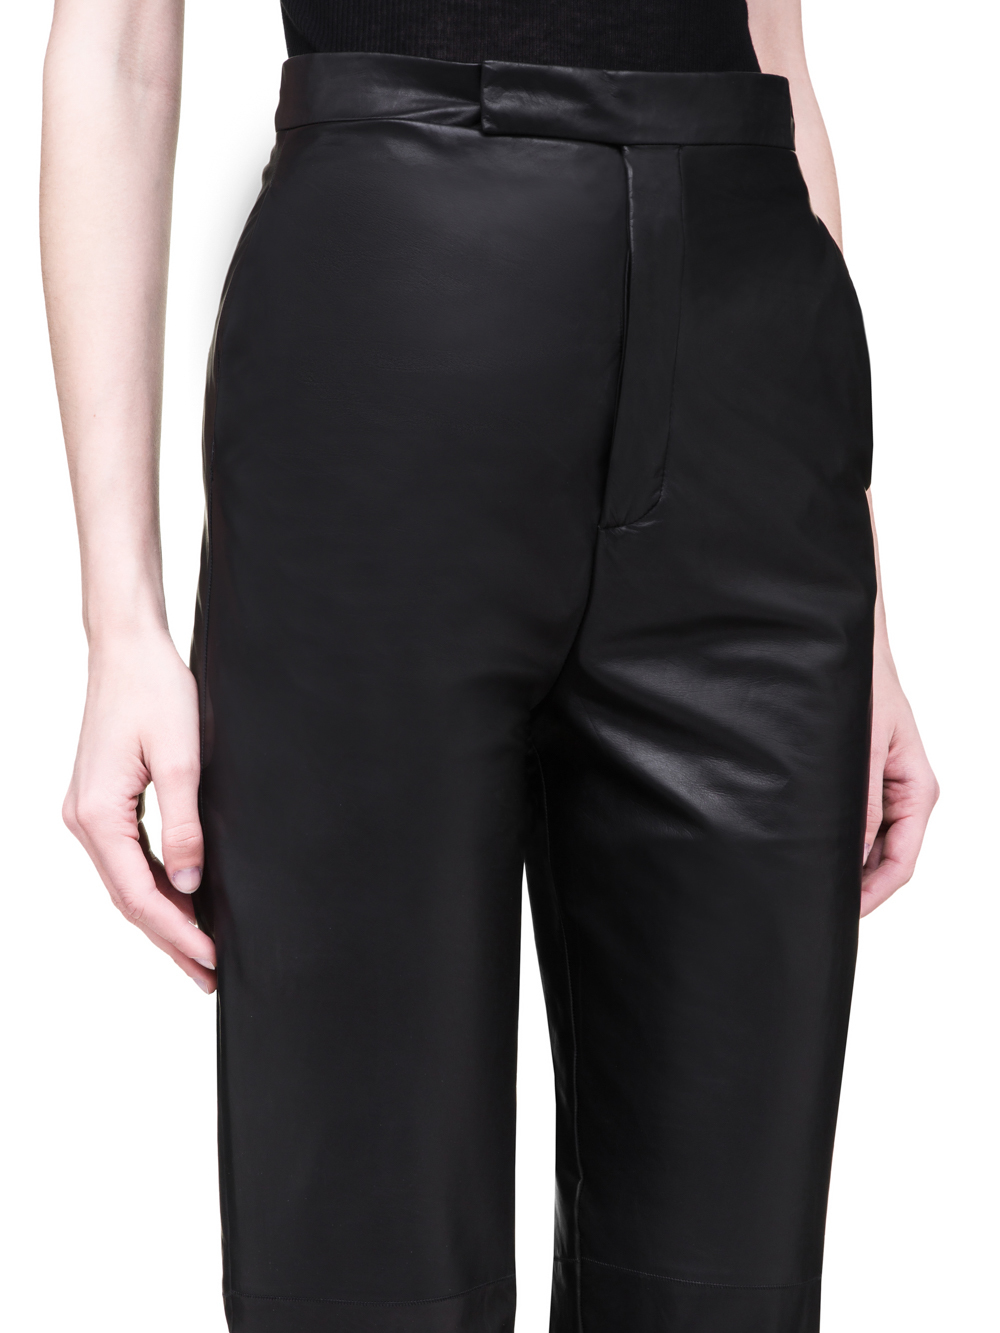 RICK OWENS SS19 BABEL BOLANS TROUSERS IN BLACK